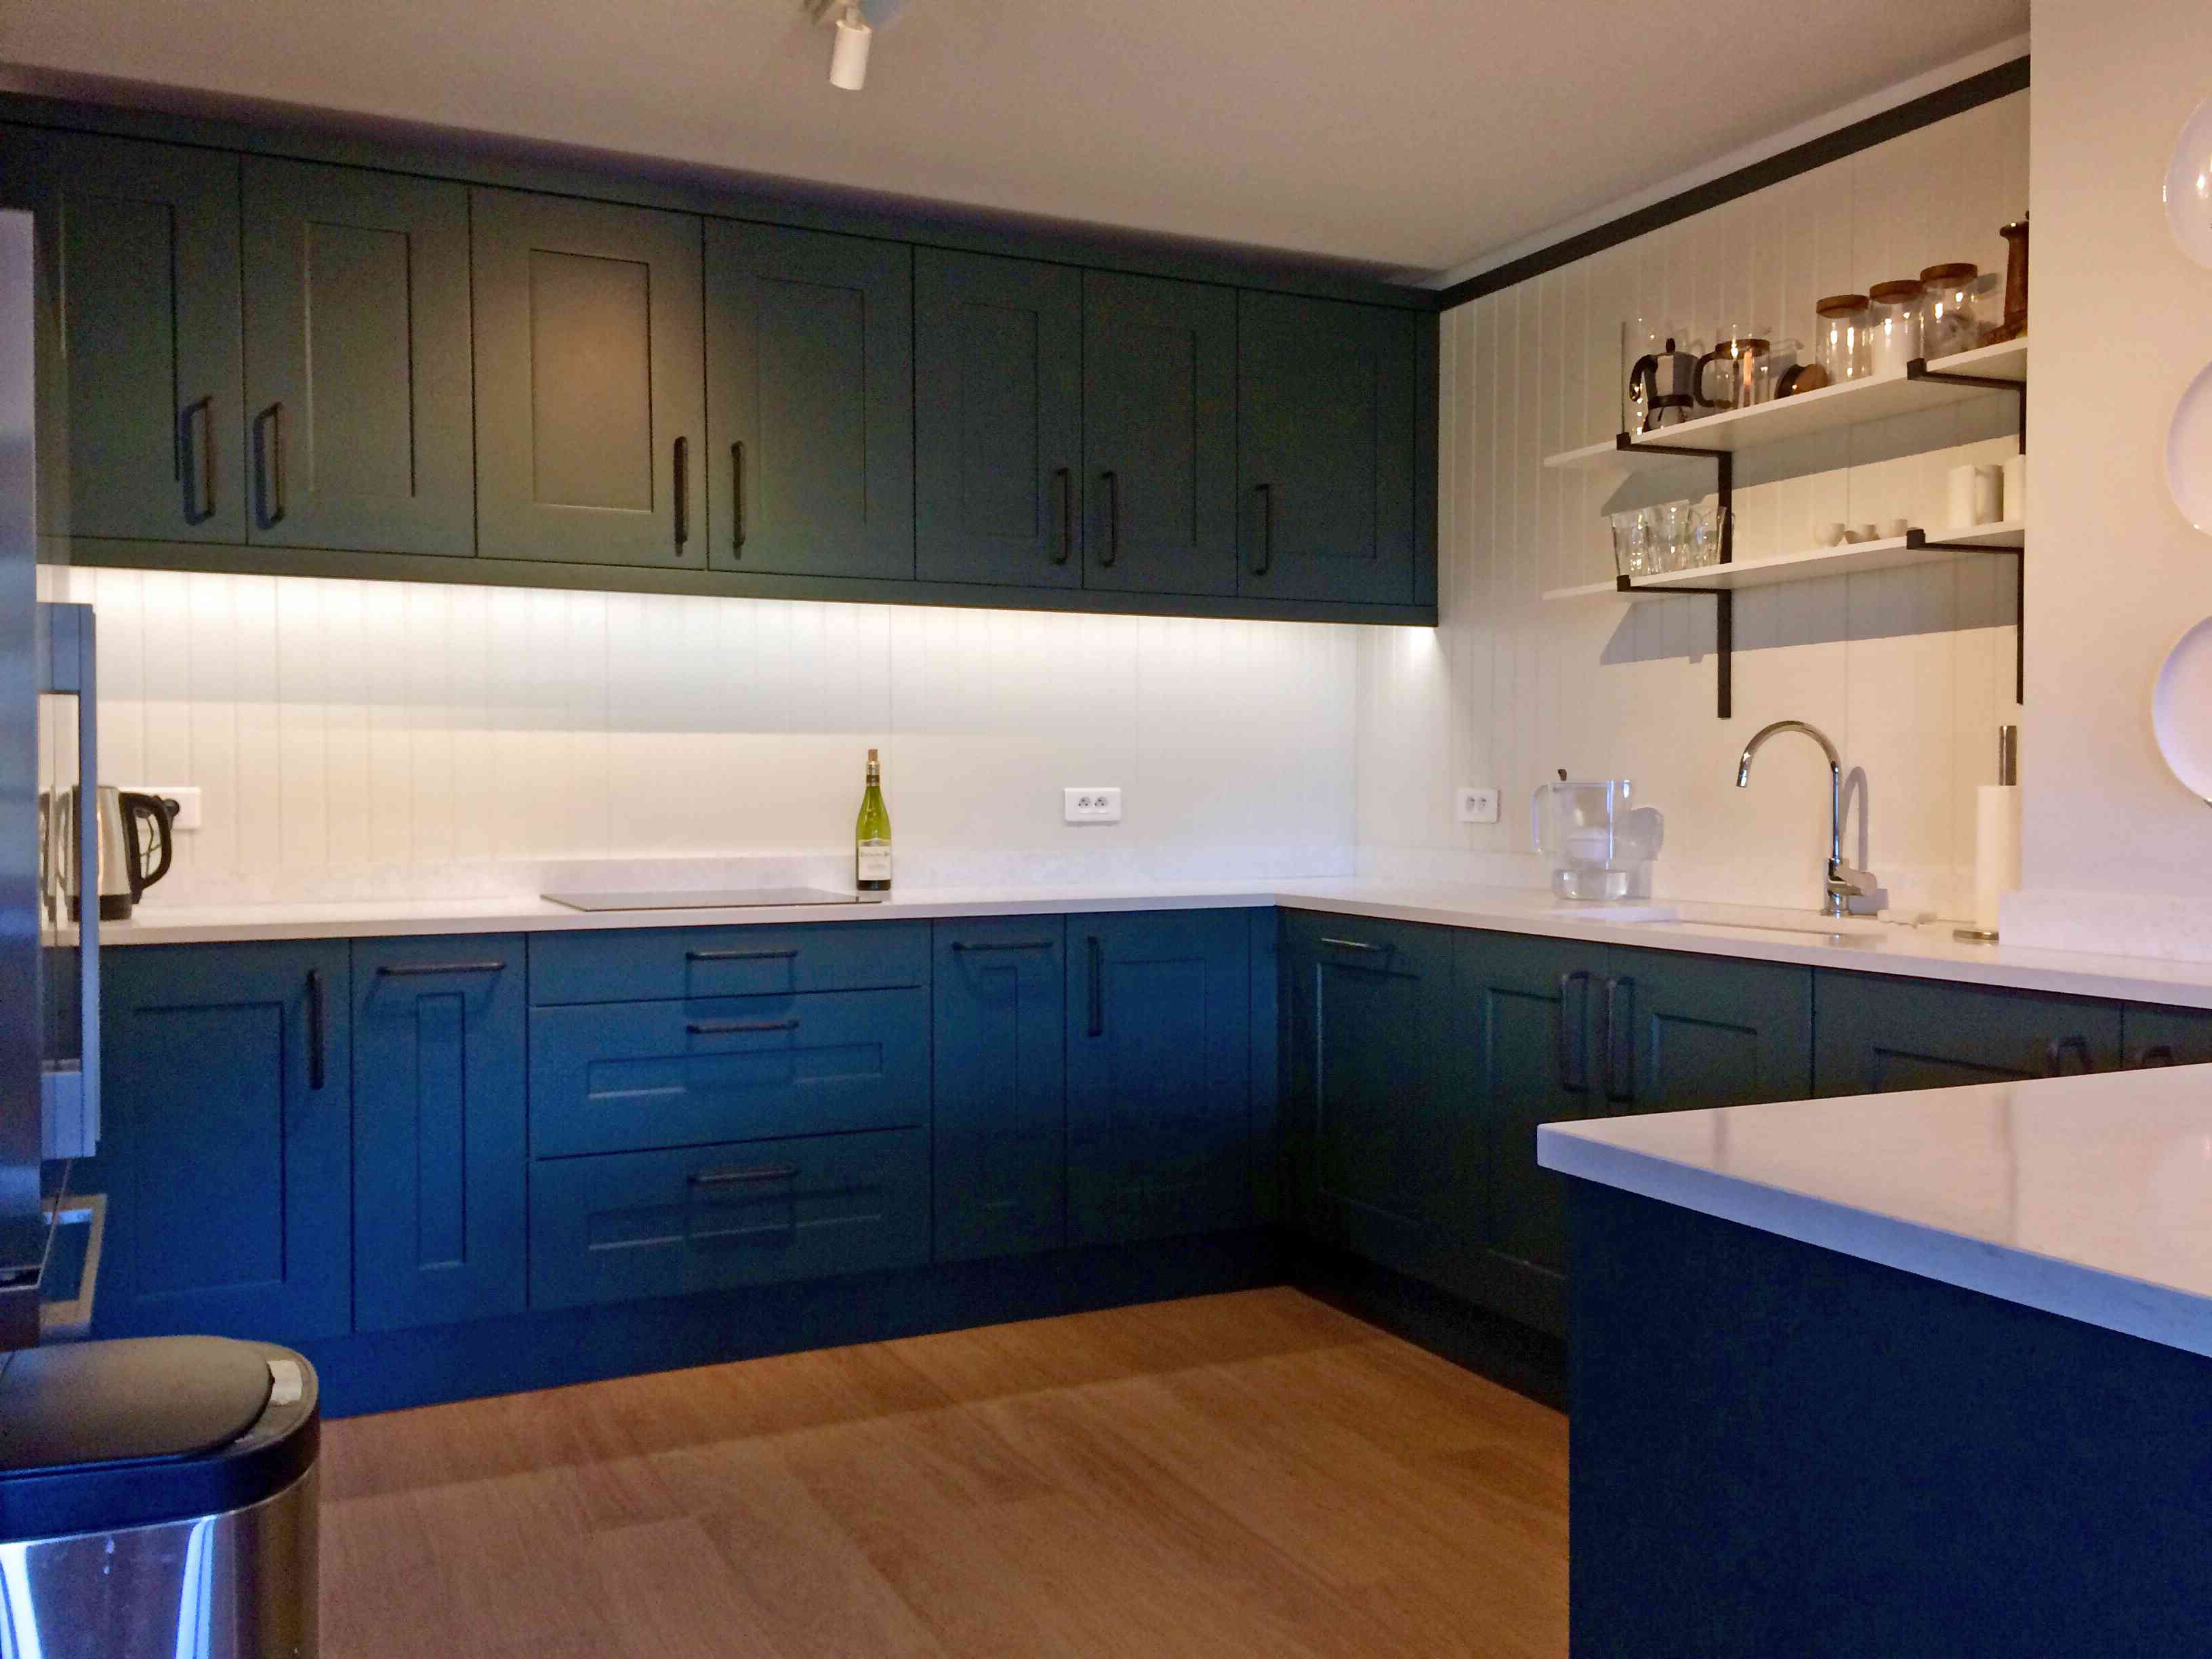 green and blue kitchen cabinets